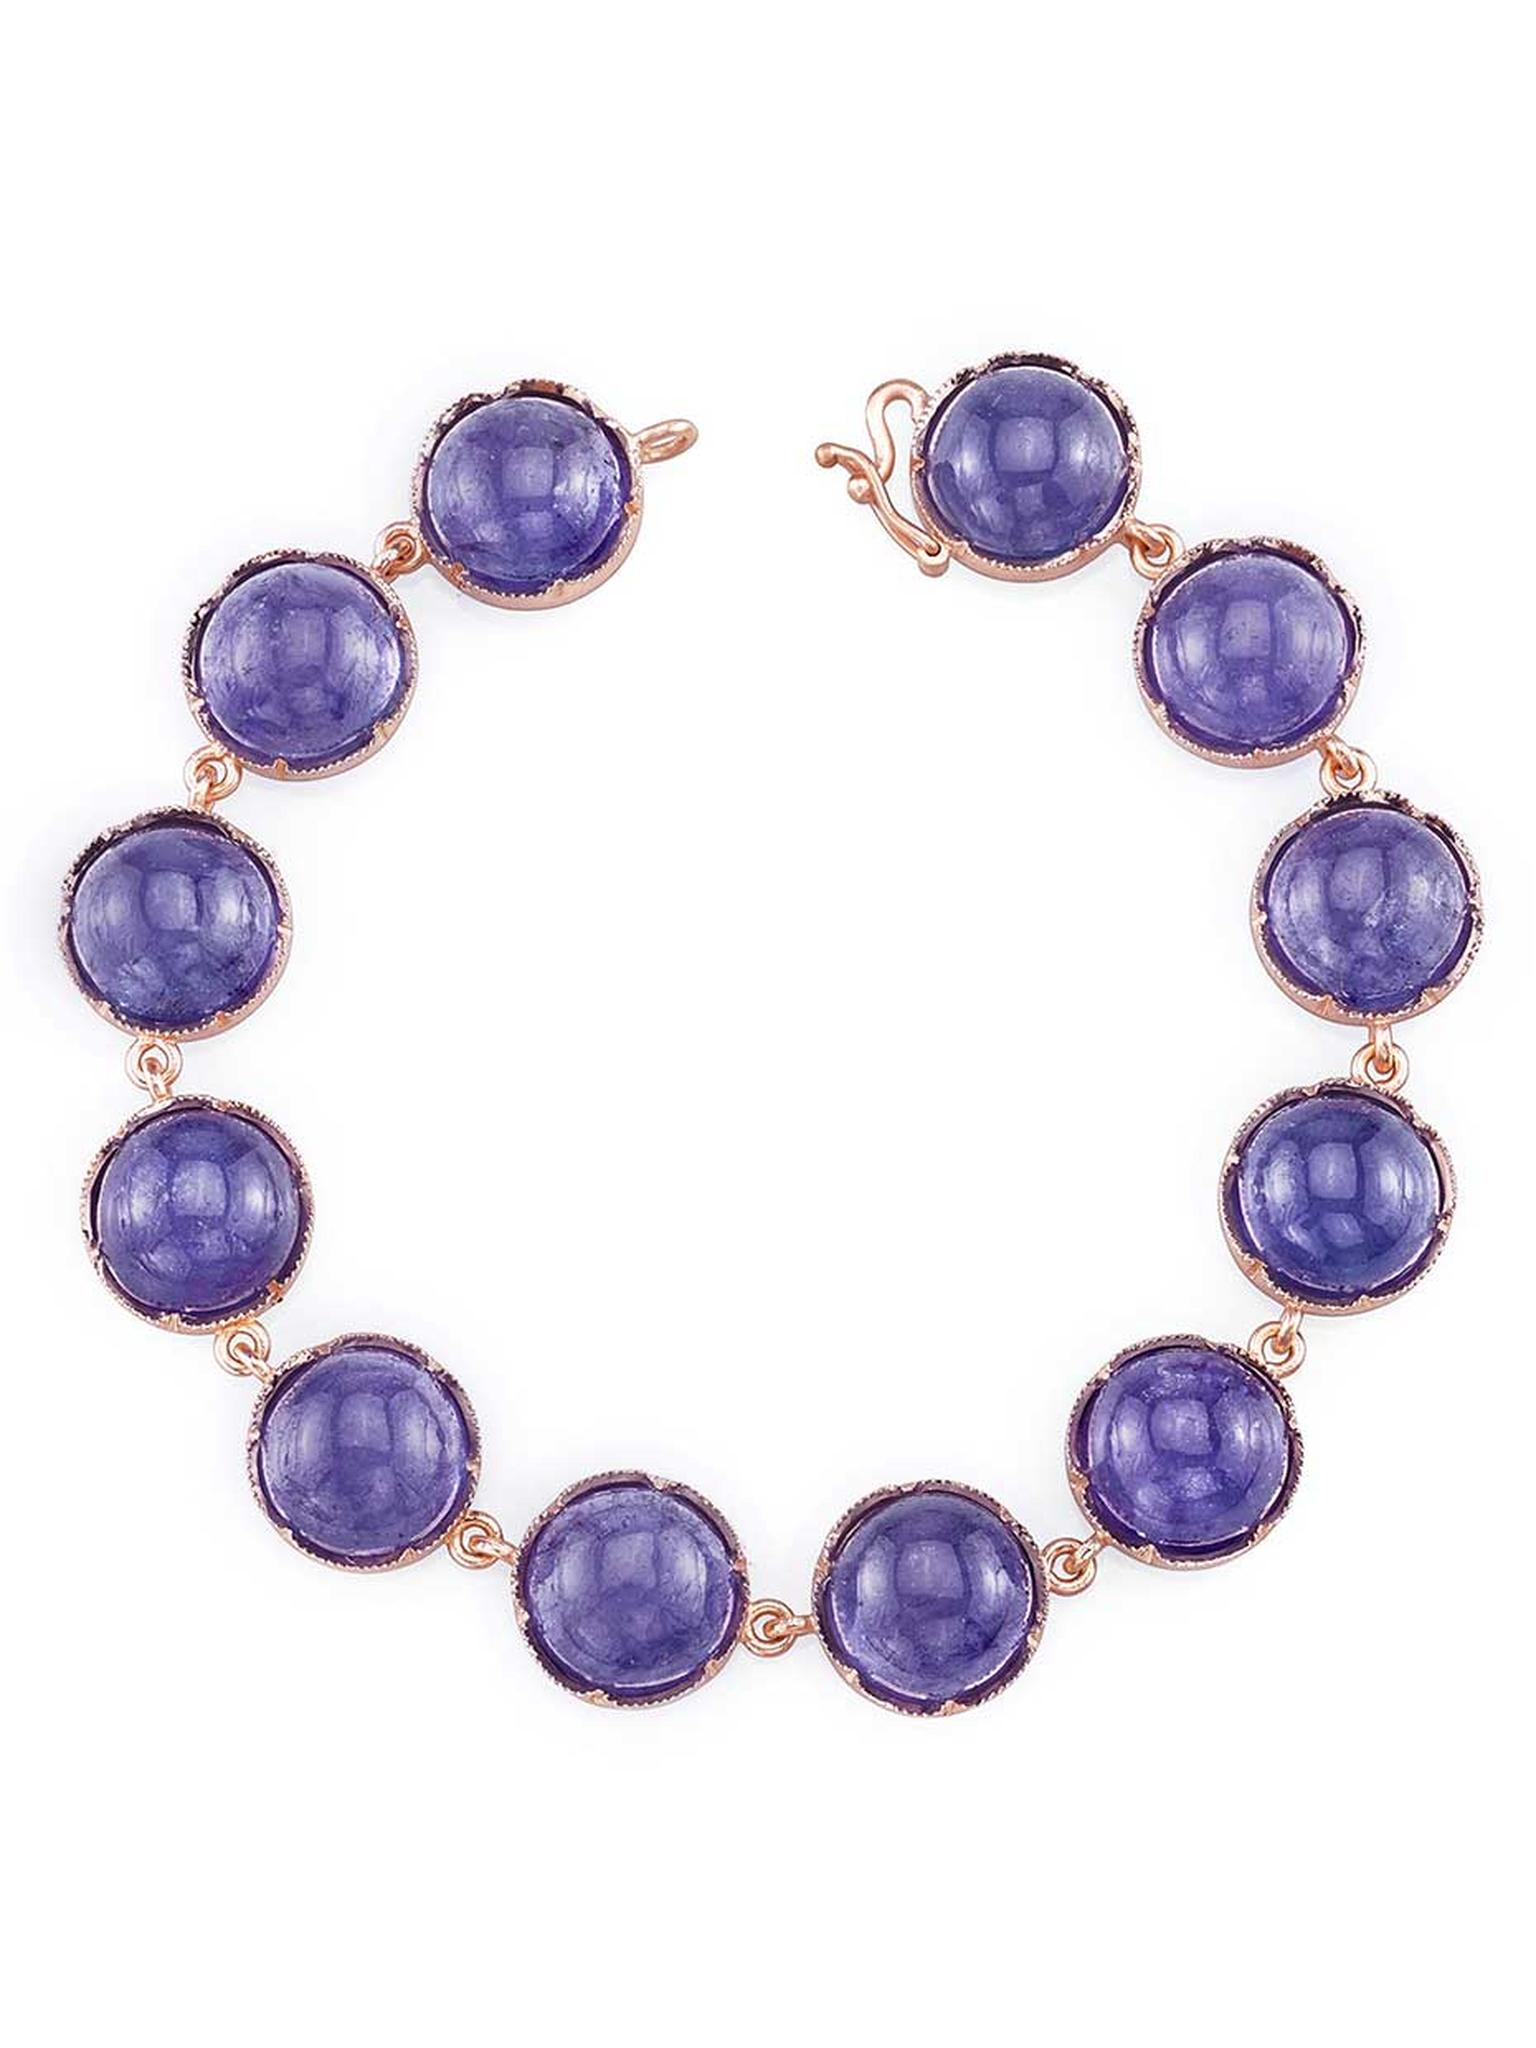 Irene Neuwirth cabochon tanzanite bracelet in rose gold, available at Ylang23.com.